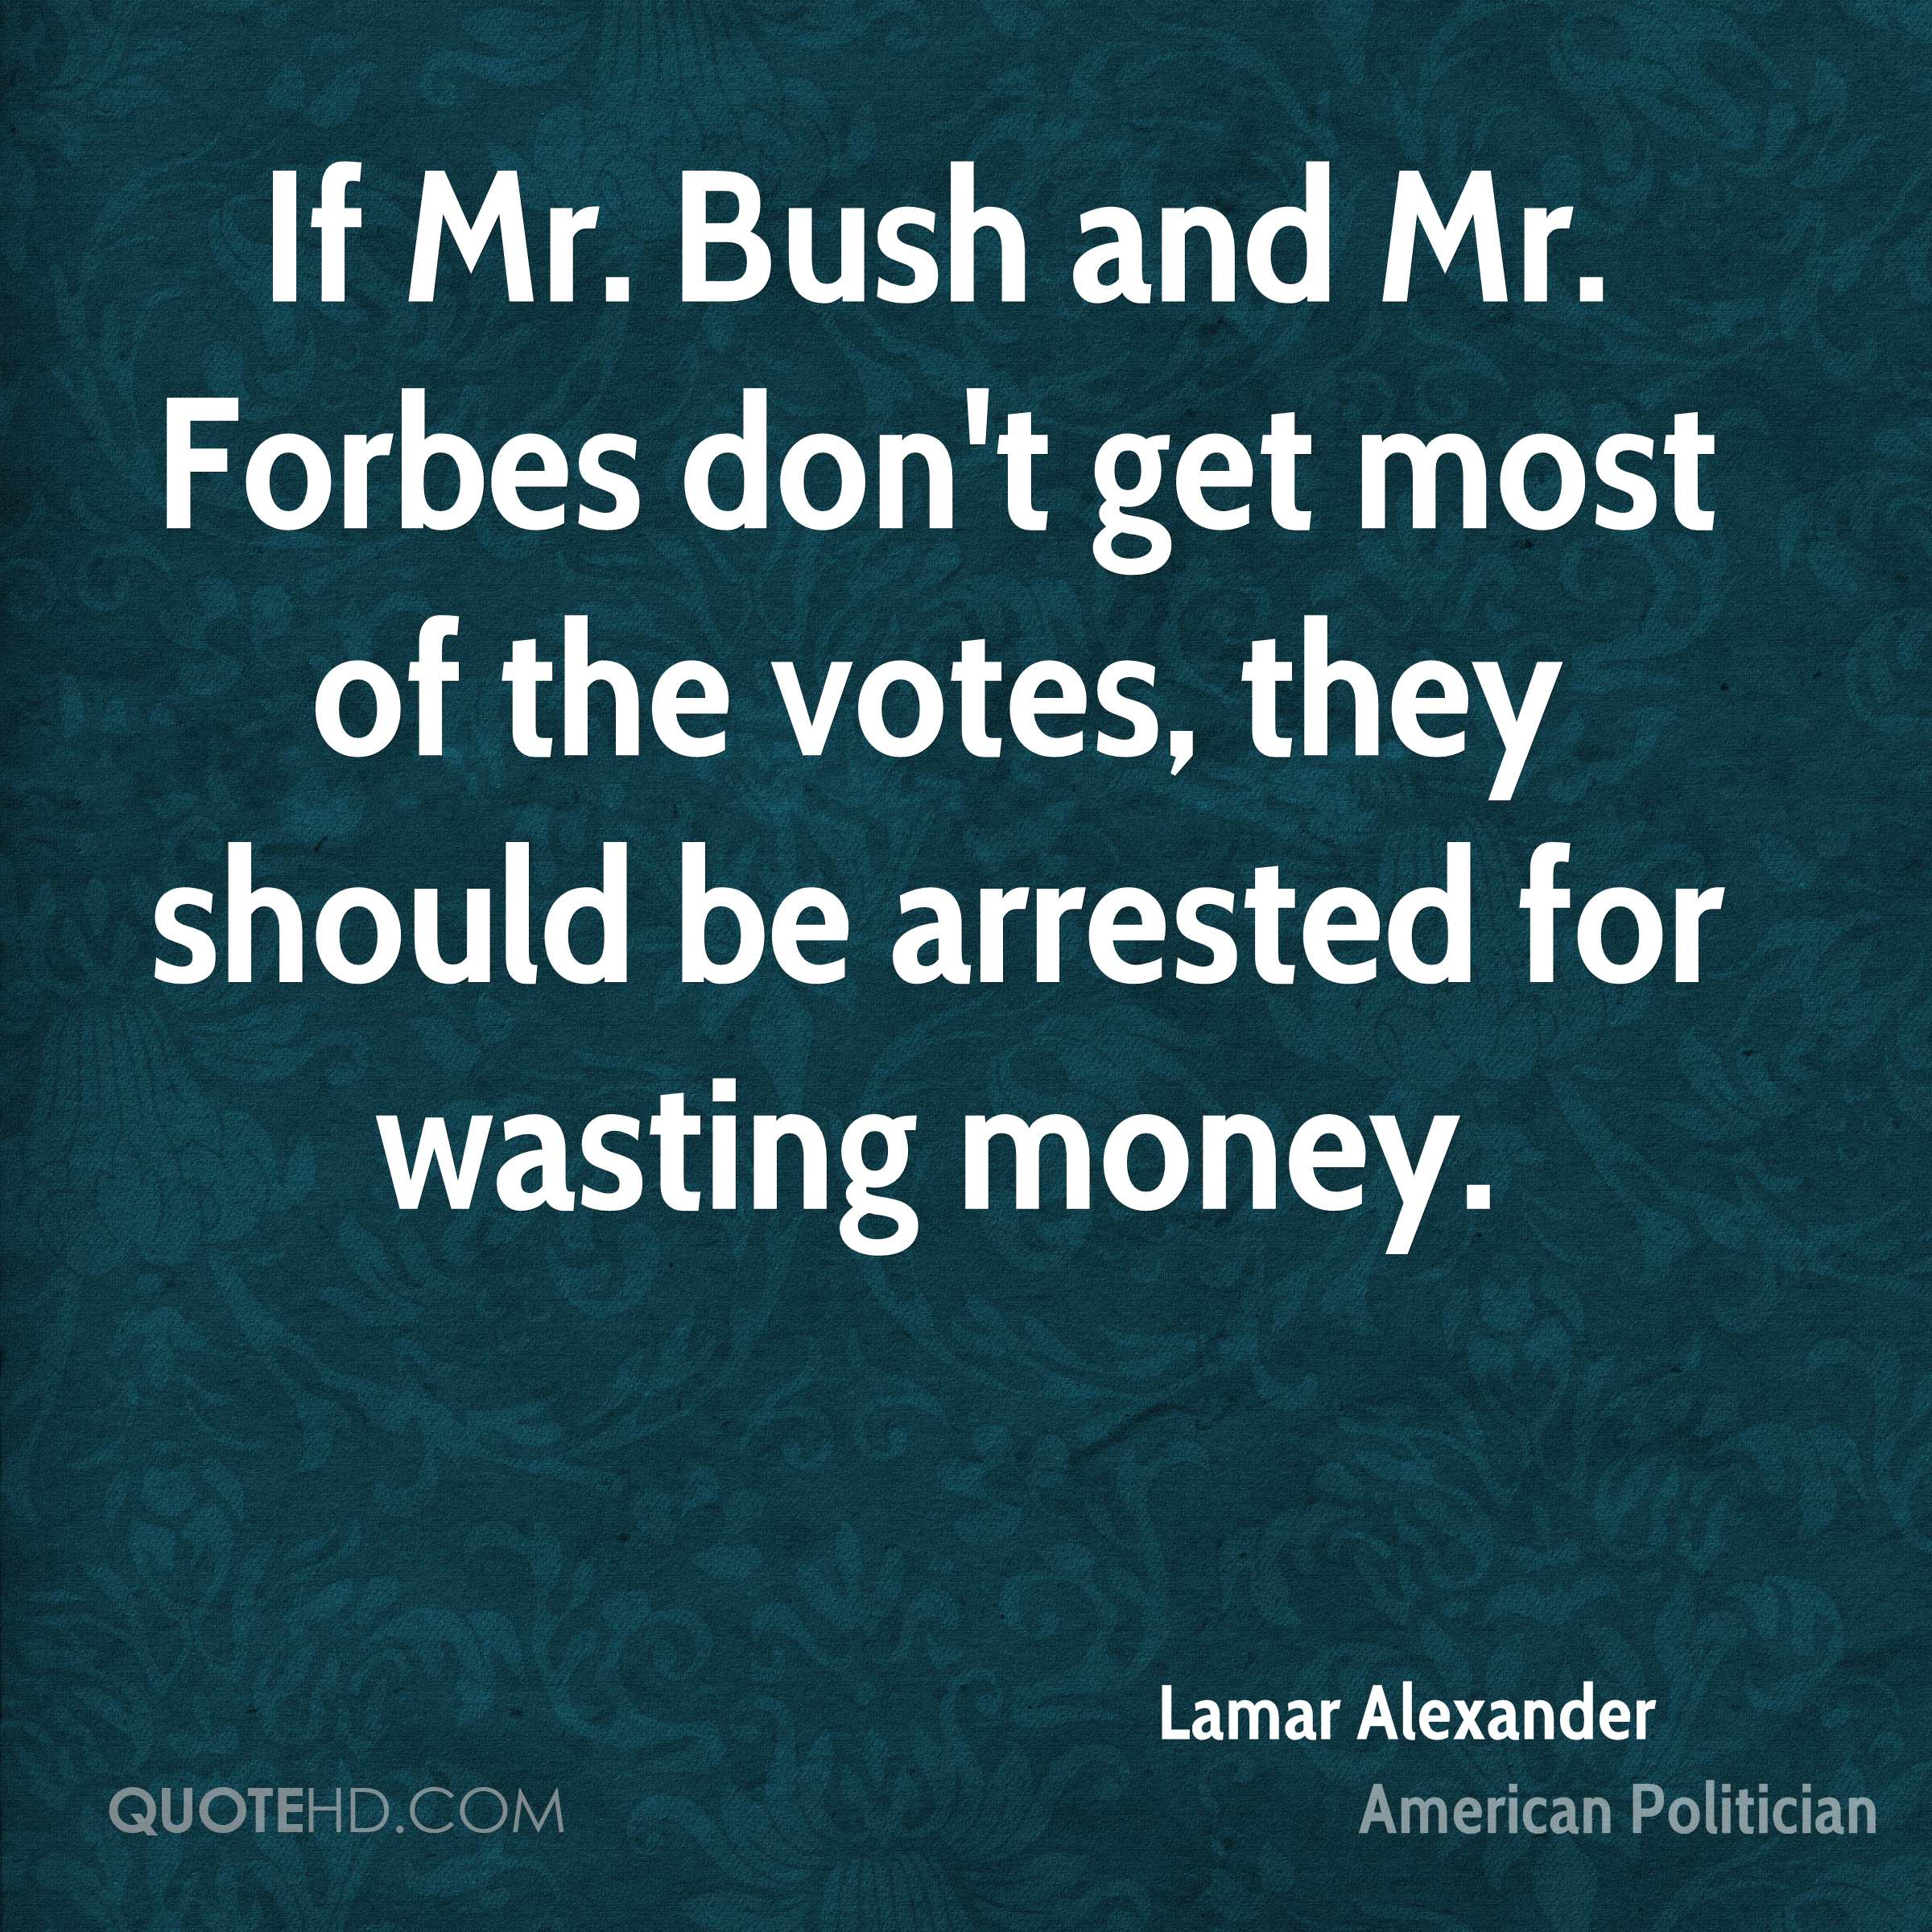 If Mr. Bush and Mr. Forbes don't get most of the votes, they should be arrested for wasting money.